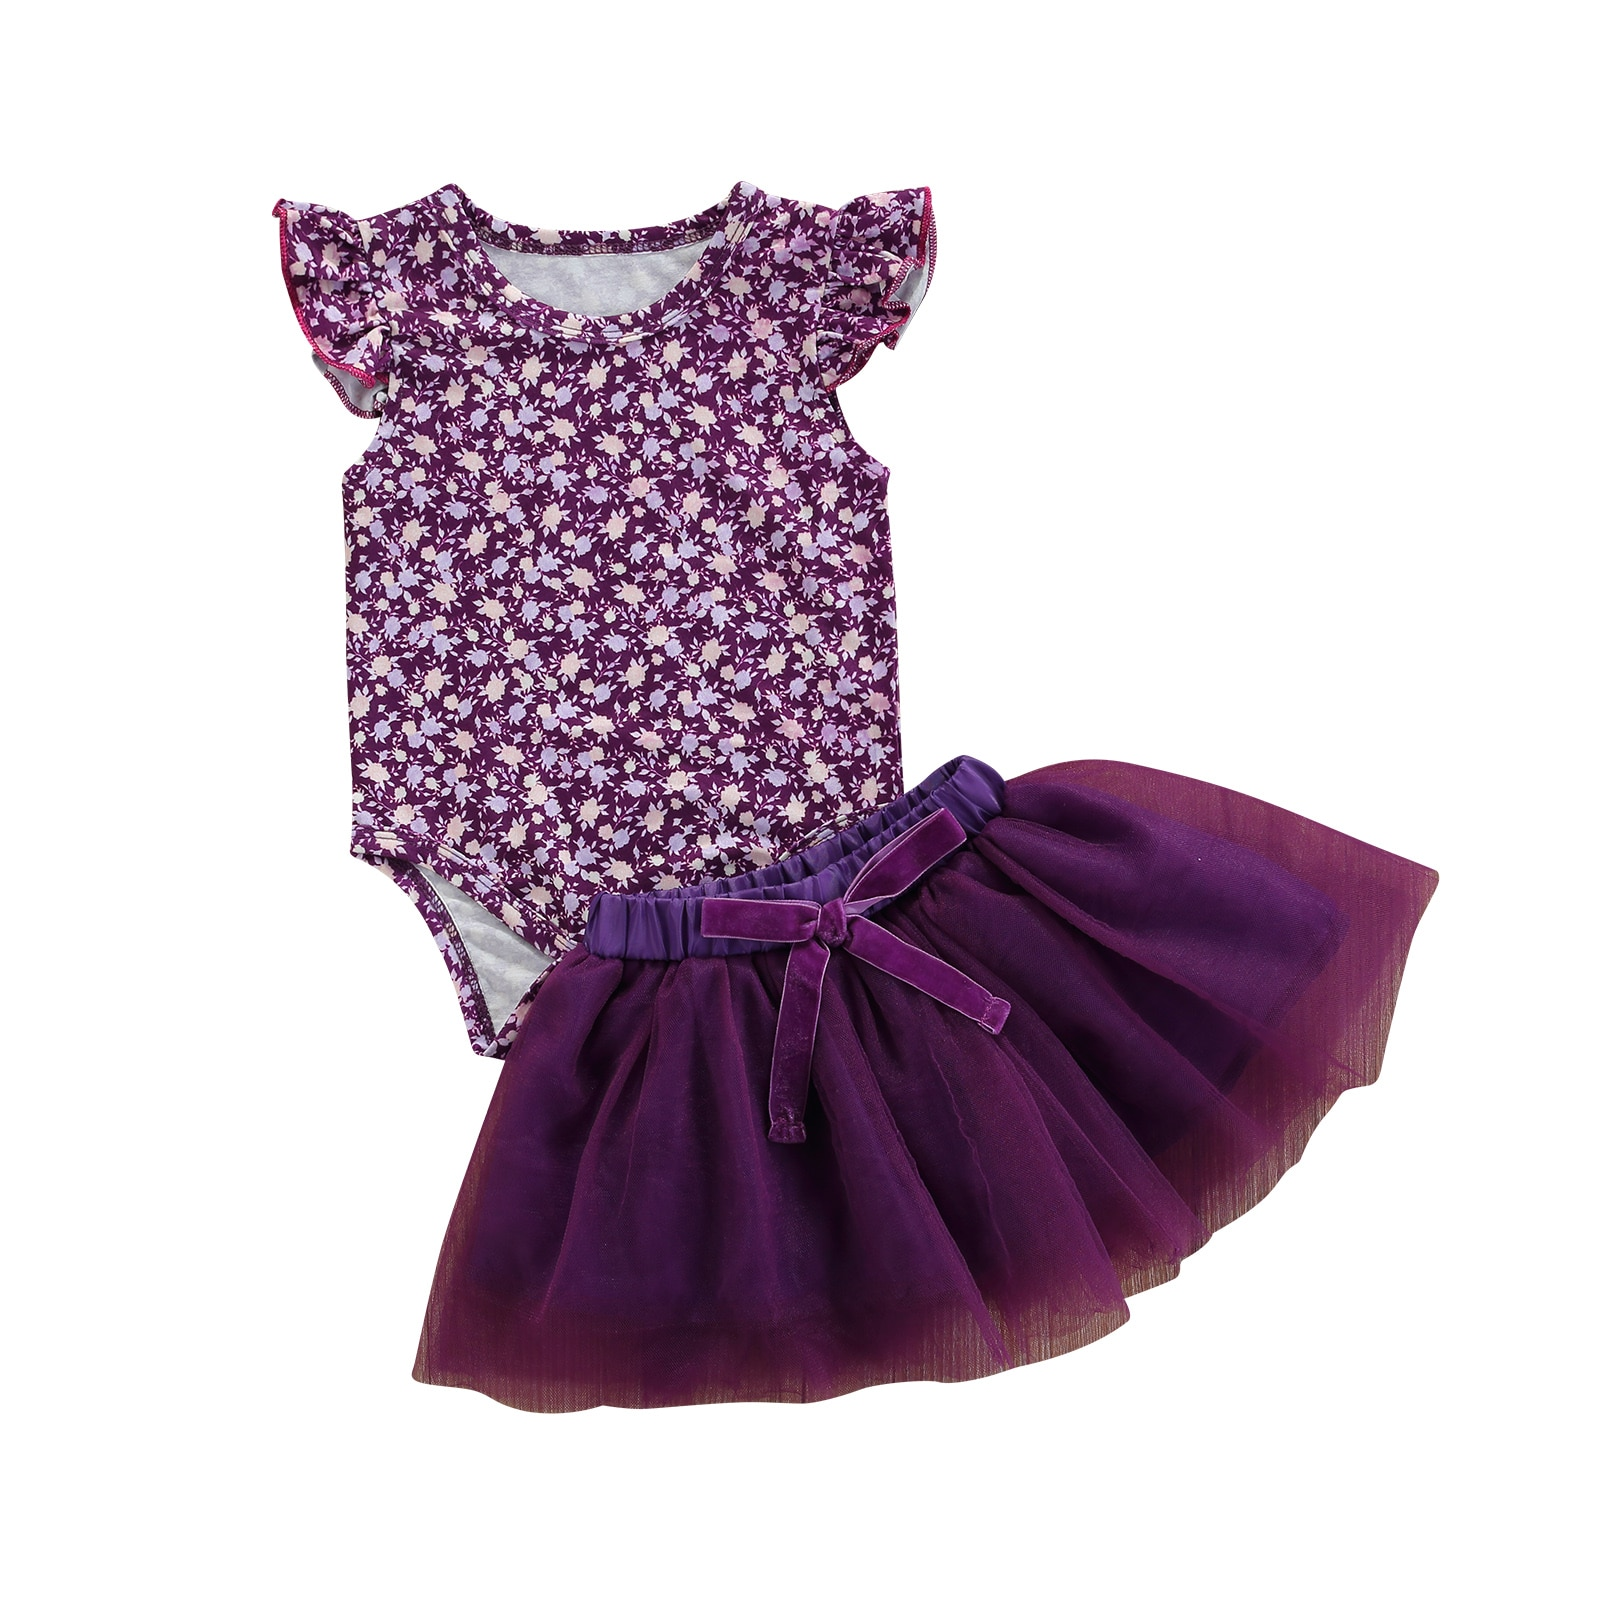 OPPERIAYA 2Pcs Summer Outfits Floral O-Neck Ruffle Sleeves Bodysuit Elastic Tutu Skirt with Bowknot for Baby Girls 0-24 Months